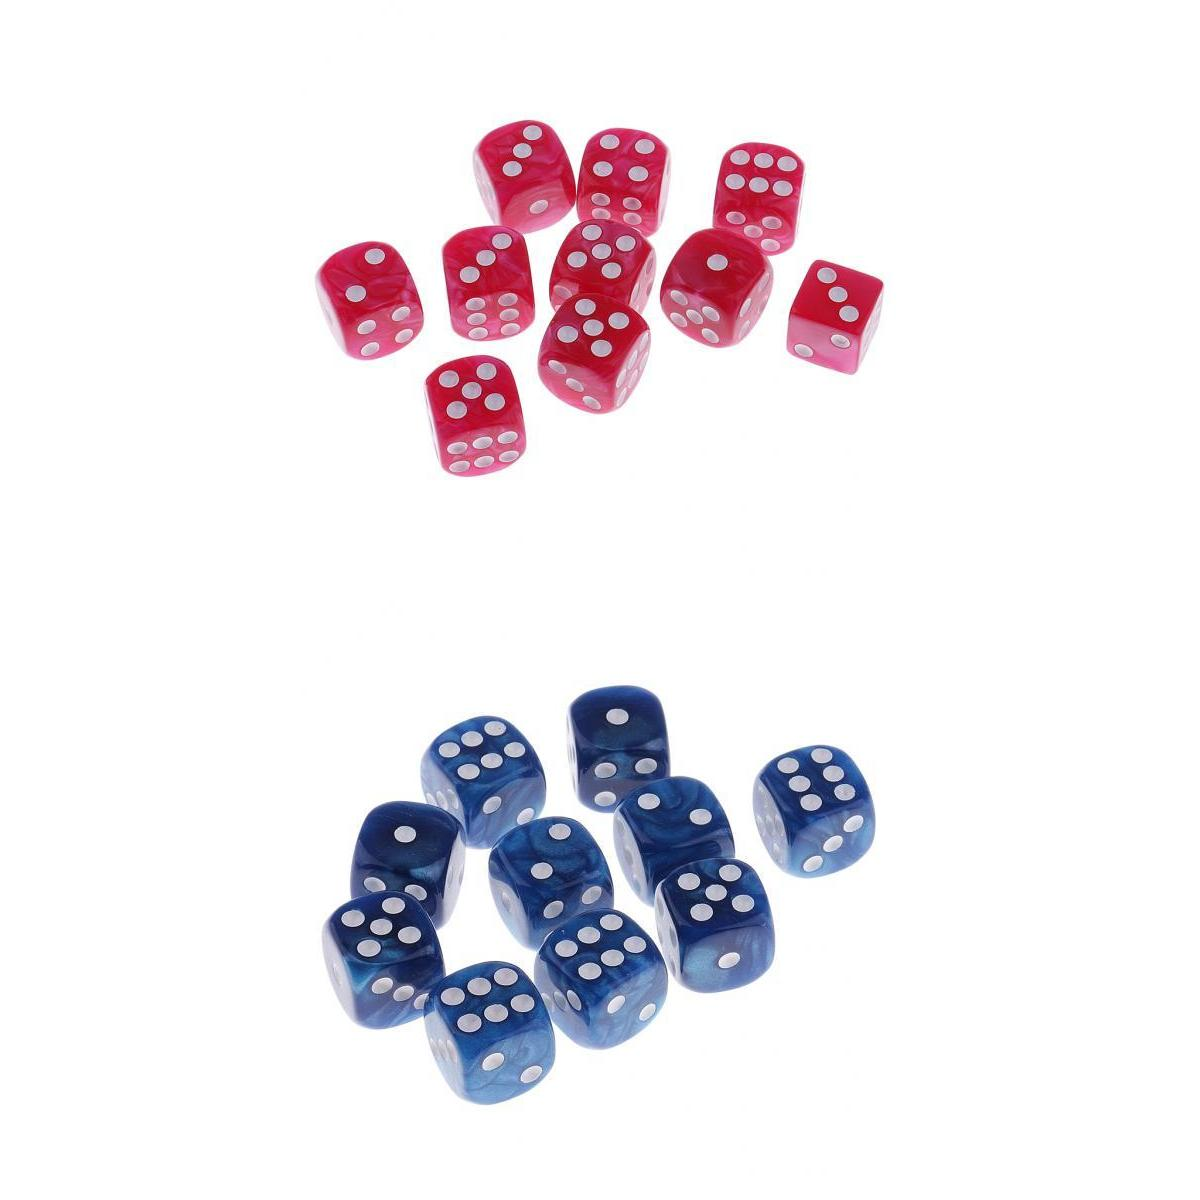 20pcs Pearlized Six Sided Spot Dices D6 for Party Bar Casino Game Pink+Blue